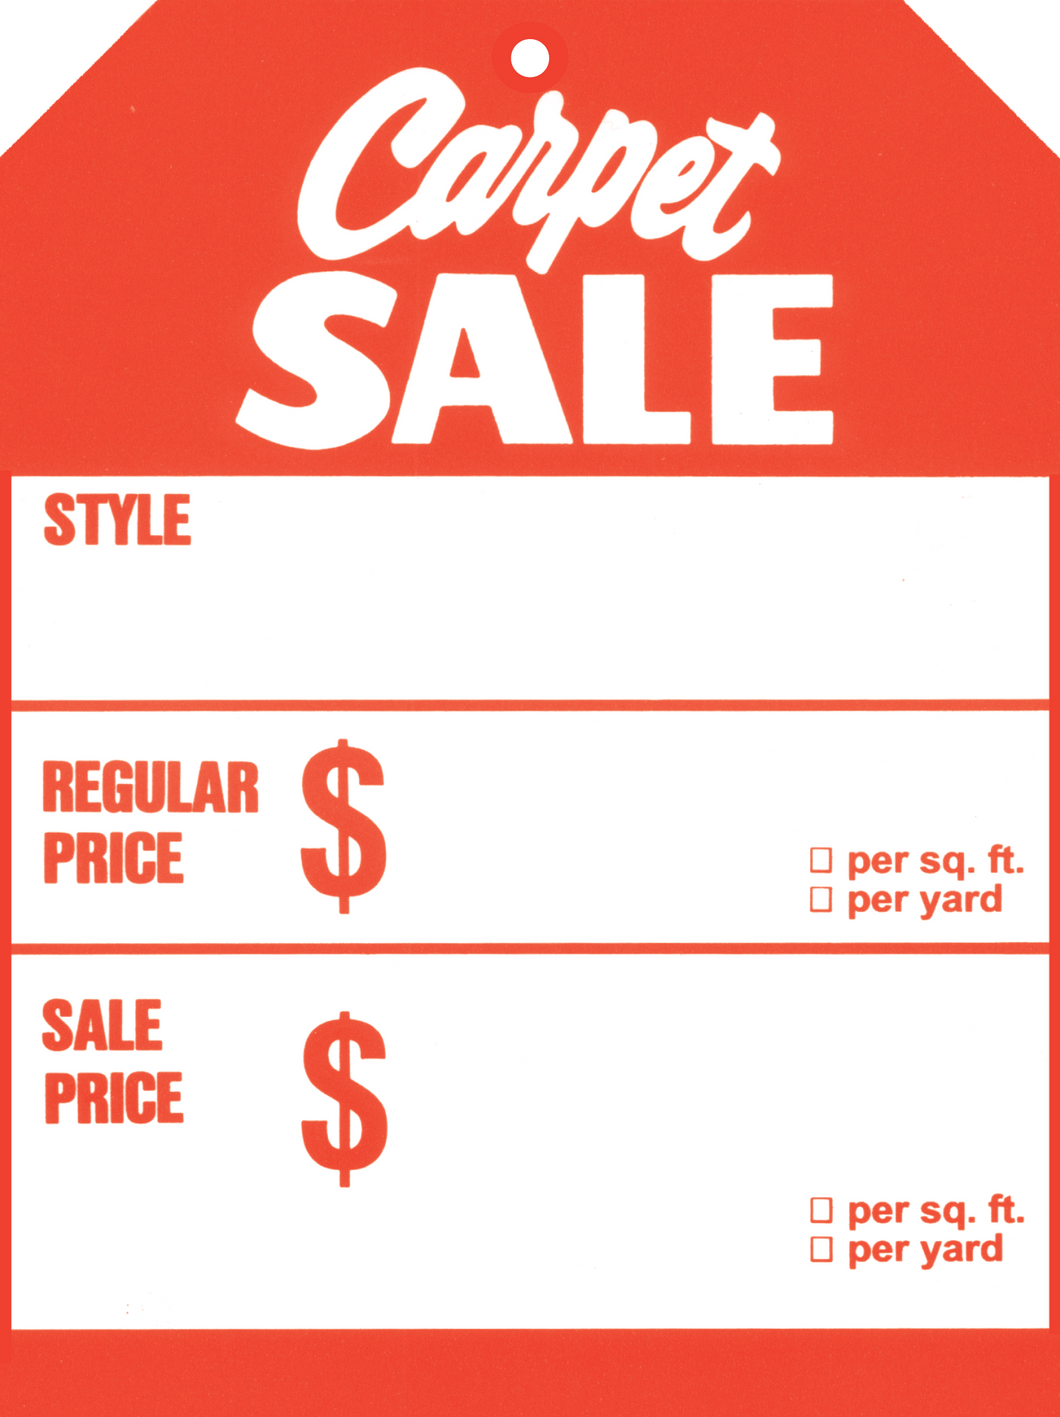 519 Carpet Sale